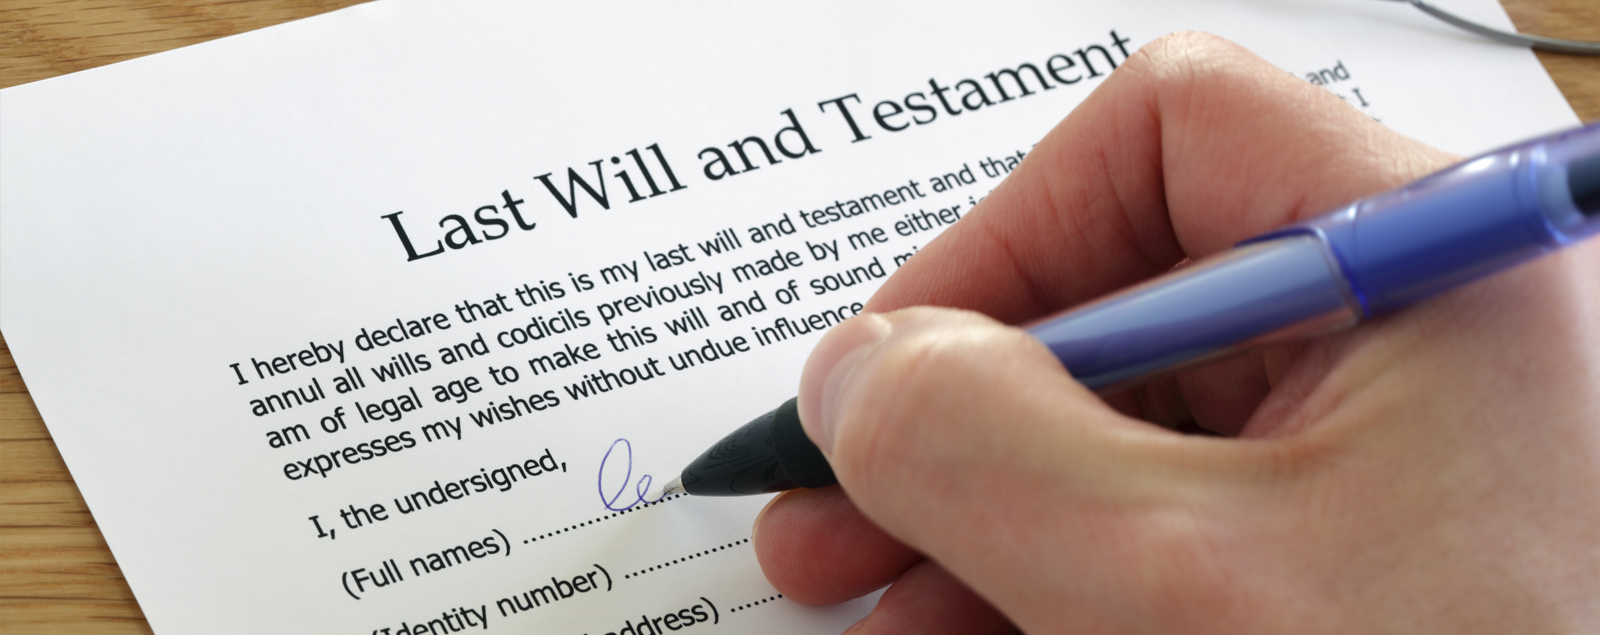 Remembering Fresh Start in your will